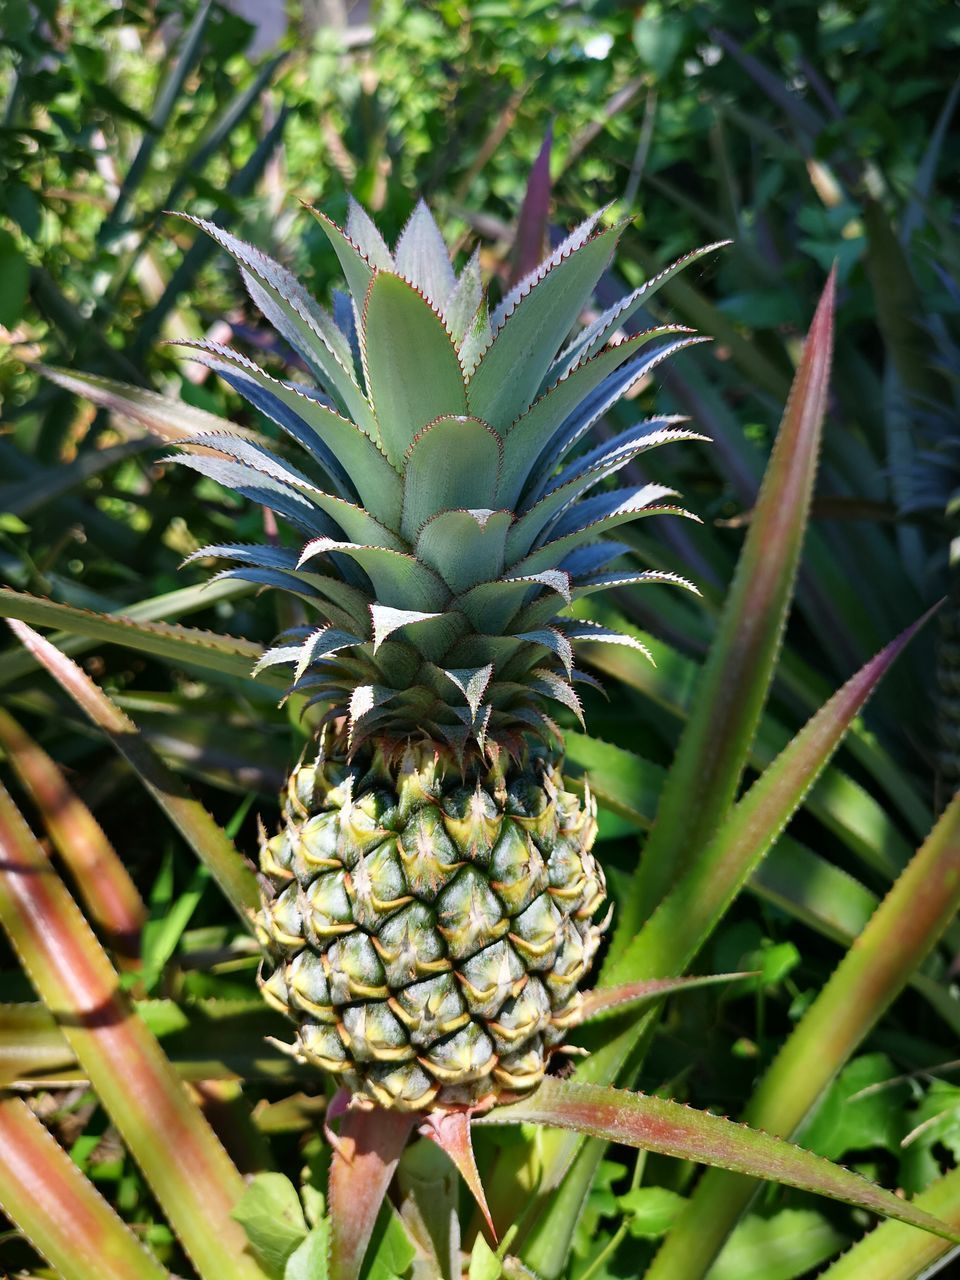 pineapple, growth, healthy eating, fruit, plant, tropical fruit, food, food and drink, freshness, green color, no people, wellbeing, nature, beauty in nature, day, plant part, leaf, close-up, focus on foreground, field, outdoors, ripe, plantation